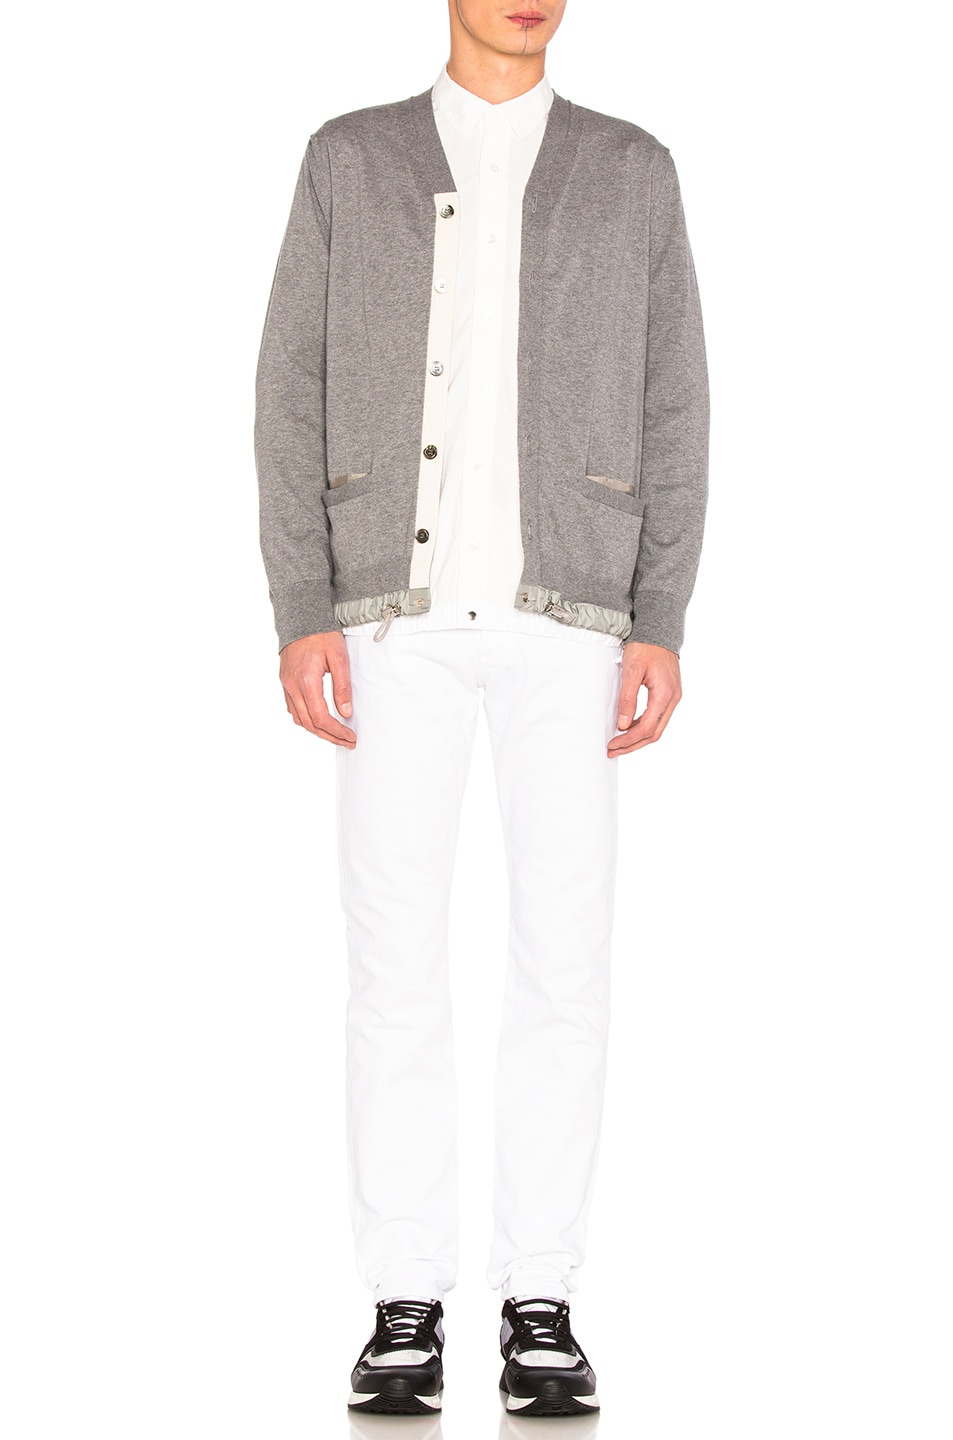 94b2eae10f Image 6 of Sacai Cotton Cashmere Knit Cardigan in Light Grey